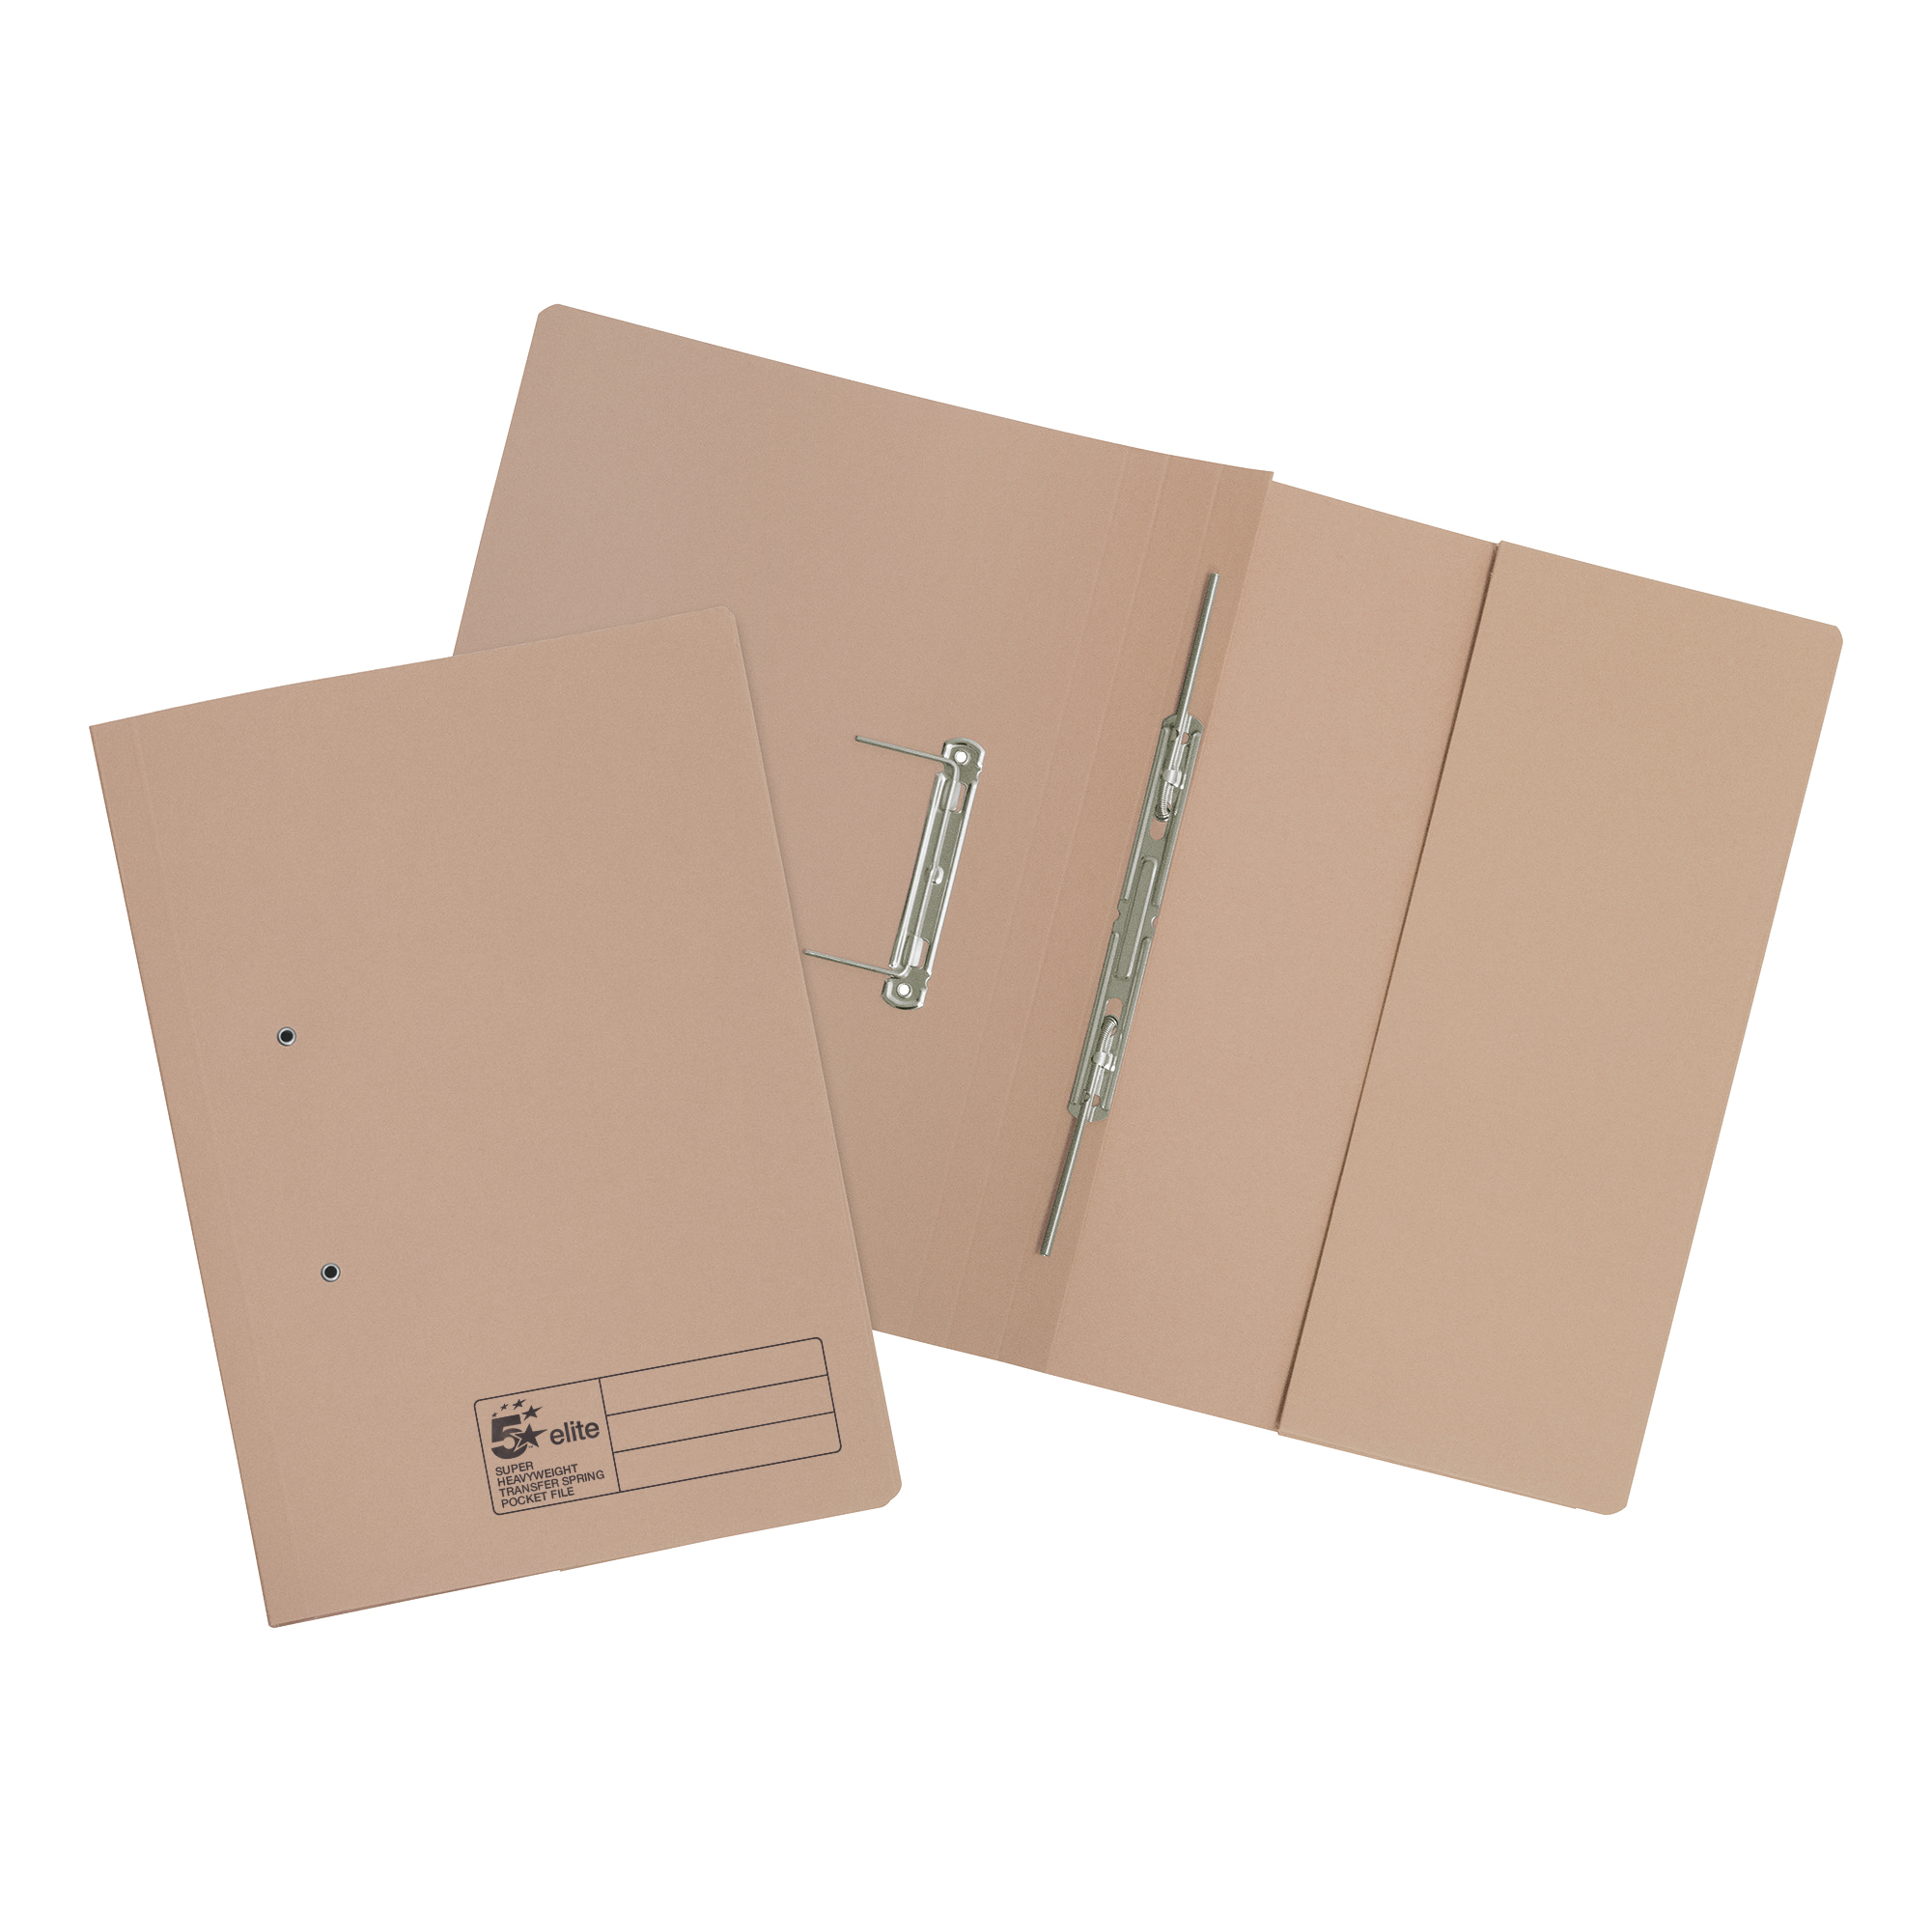 5 Star Elite Transfer Spring Pocket File Super Heavyweight 380gsm Foolscap Buff [Pack 25]